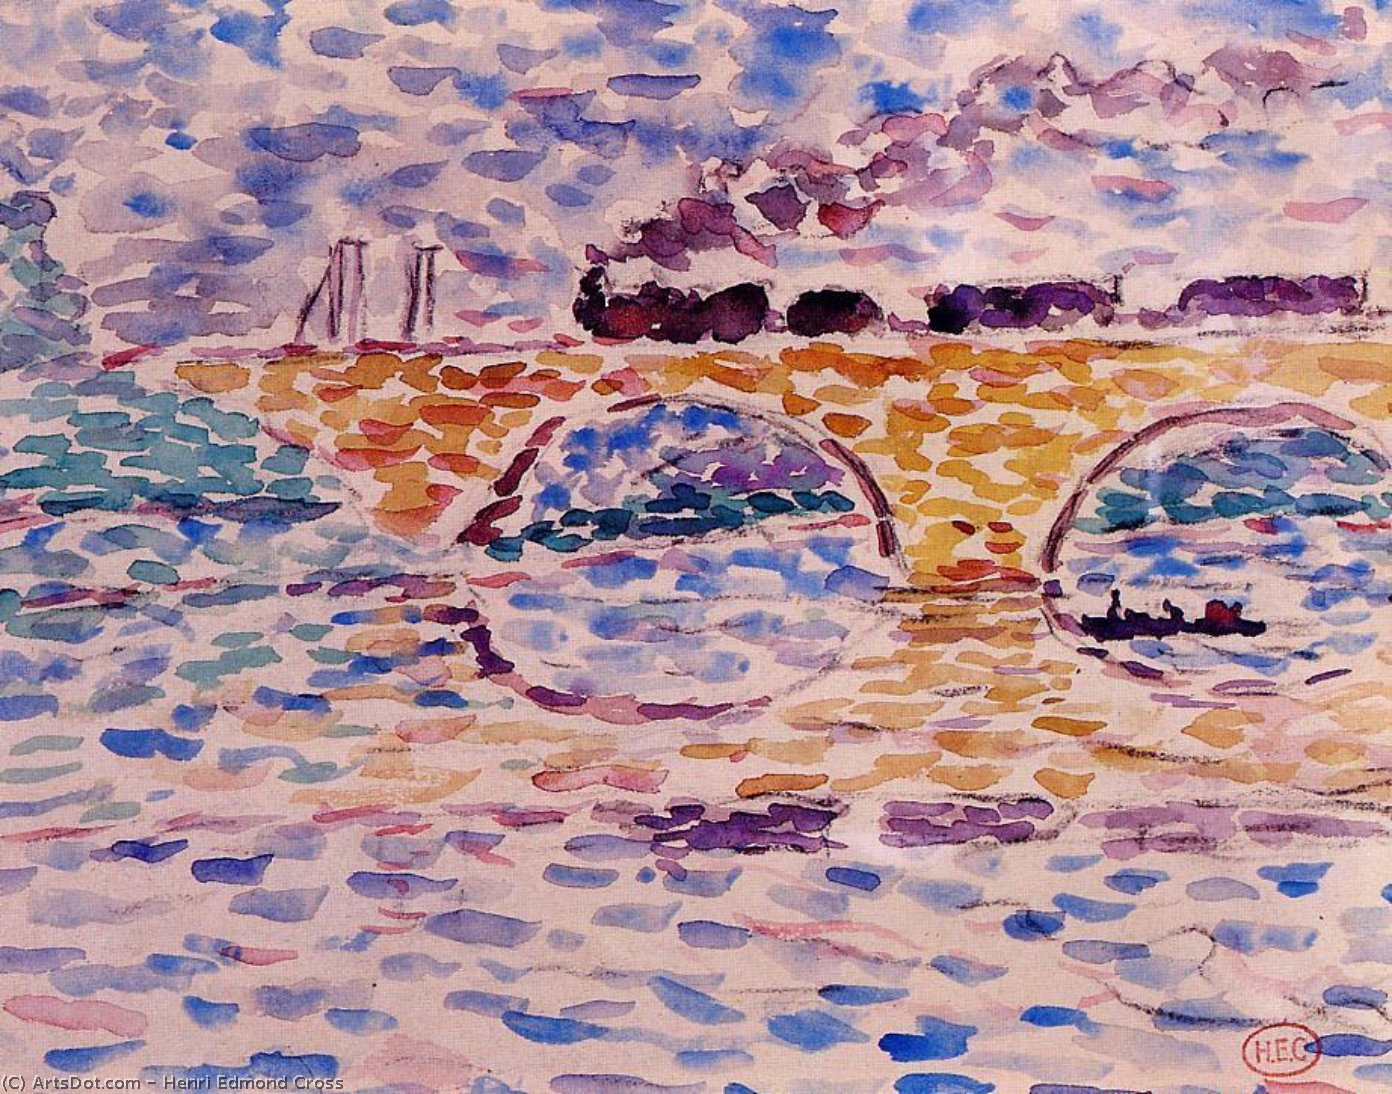 Der Viaduct, Aquarell von Henri Edmond Cross (1856-1910, France)